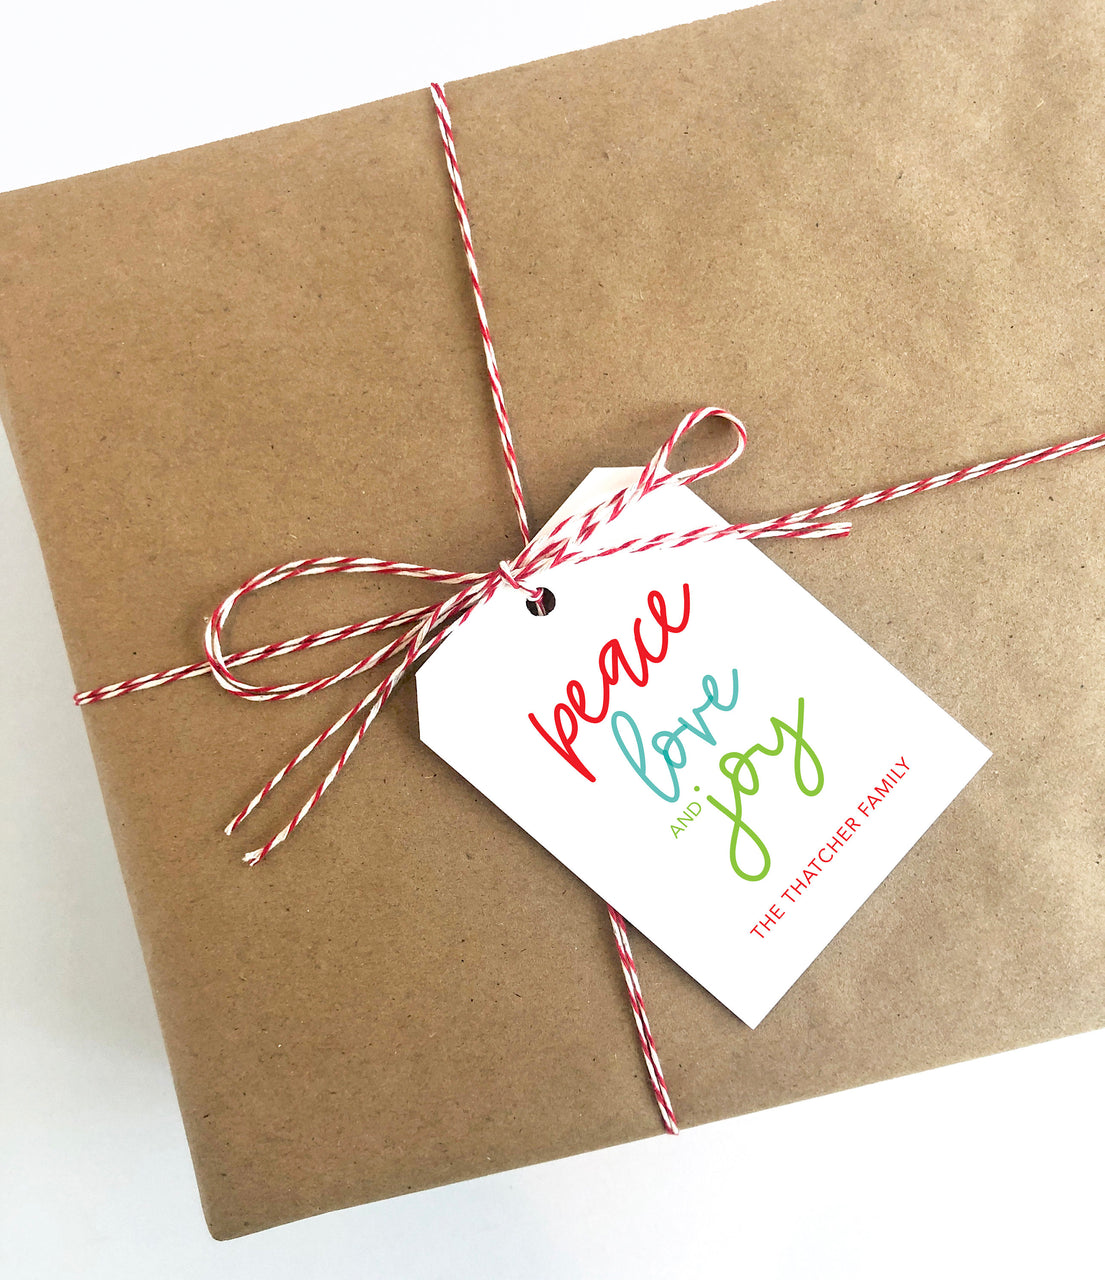 Peace love and joy Tag,Christmas Tag,Holiday Packaging,Gift Tag,Holiday Gift Tag,Personalized Gift Tag,Custom Tag,Christmas Packaging 011HT - Joy Creative Shop